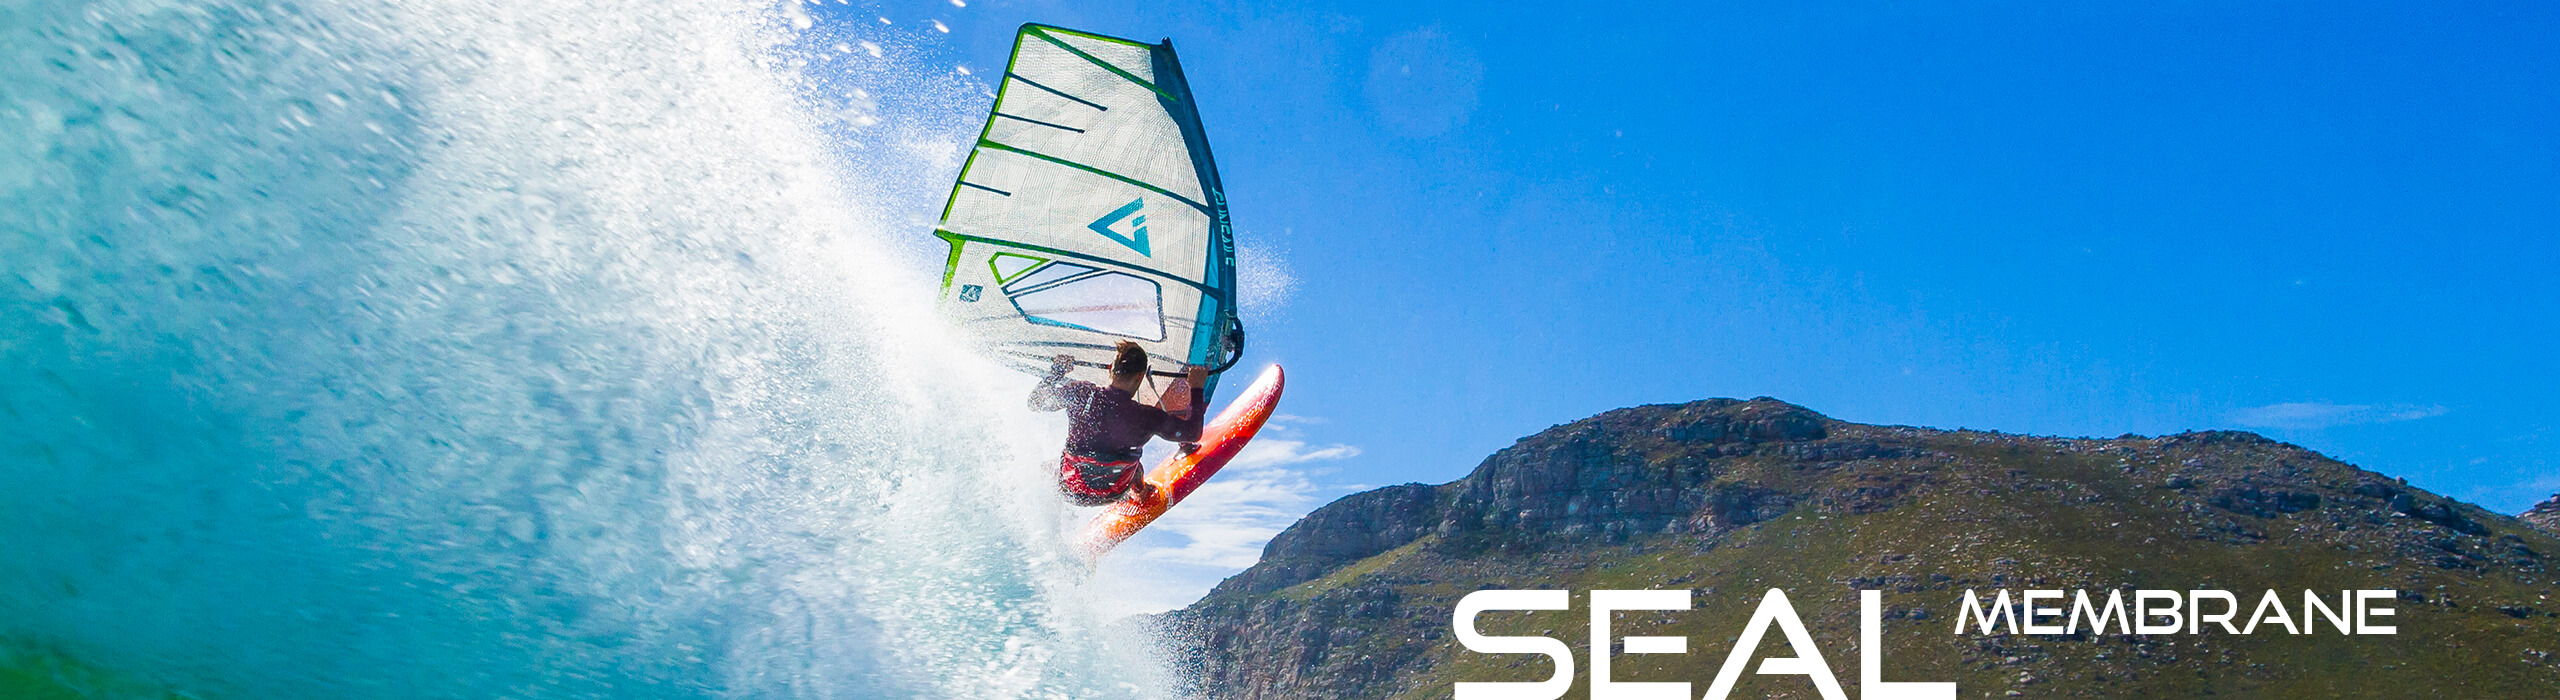 GUNSAILS | Seal Membrane - Windsurf Wave Sail in Membrane Construction